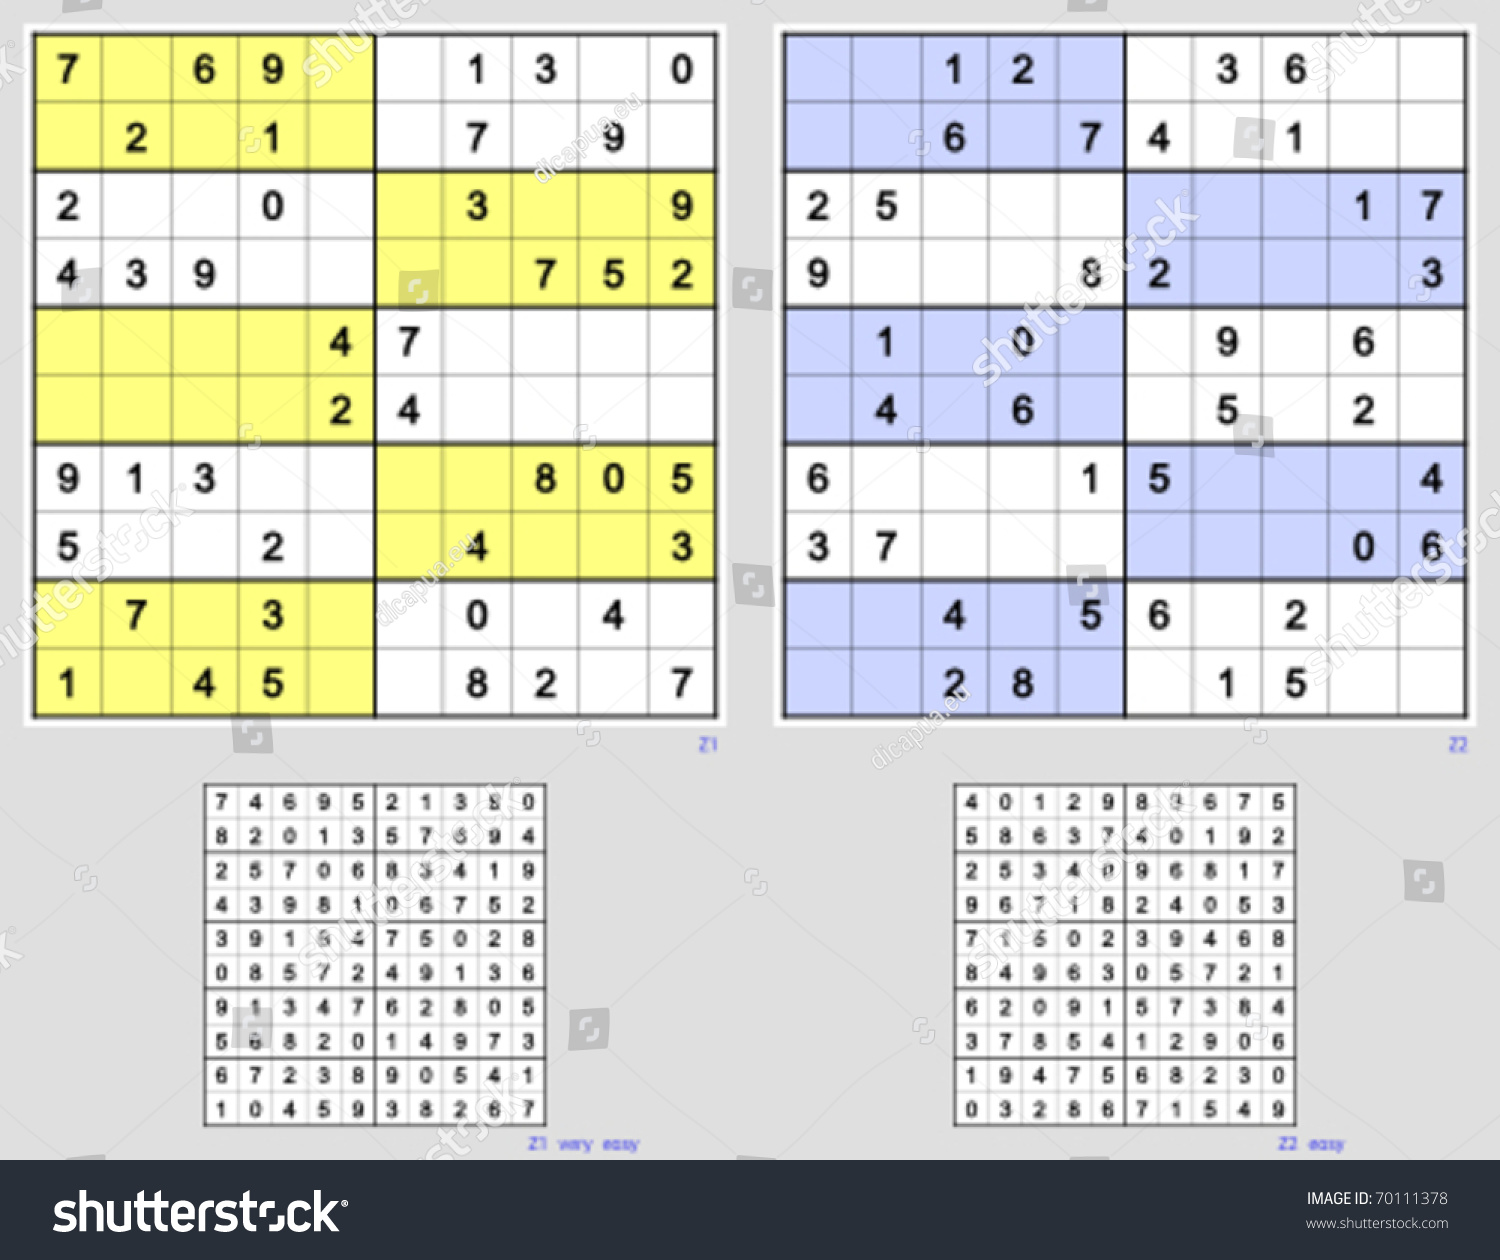 Fantastic 10 Window Envelope Template Tiny 10 Words Not To Put On Your Resume Square 15 Year Old First Job Resume 2 Page Brochure Template Youthful 2014 Resume Templates Microsoft Word Soft3 Different Resume Styles Sudoku 10x10 Grid Full Symmetry Very Stock Vector 70111378 ..